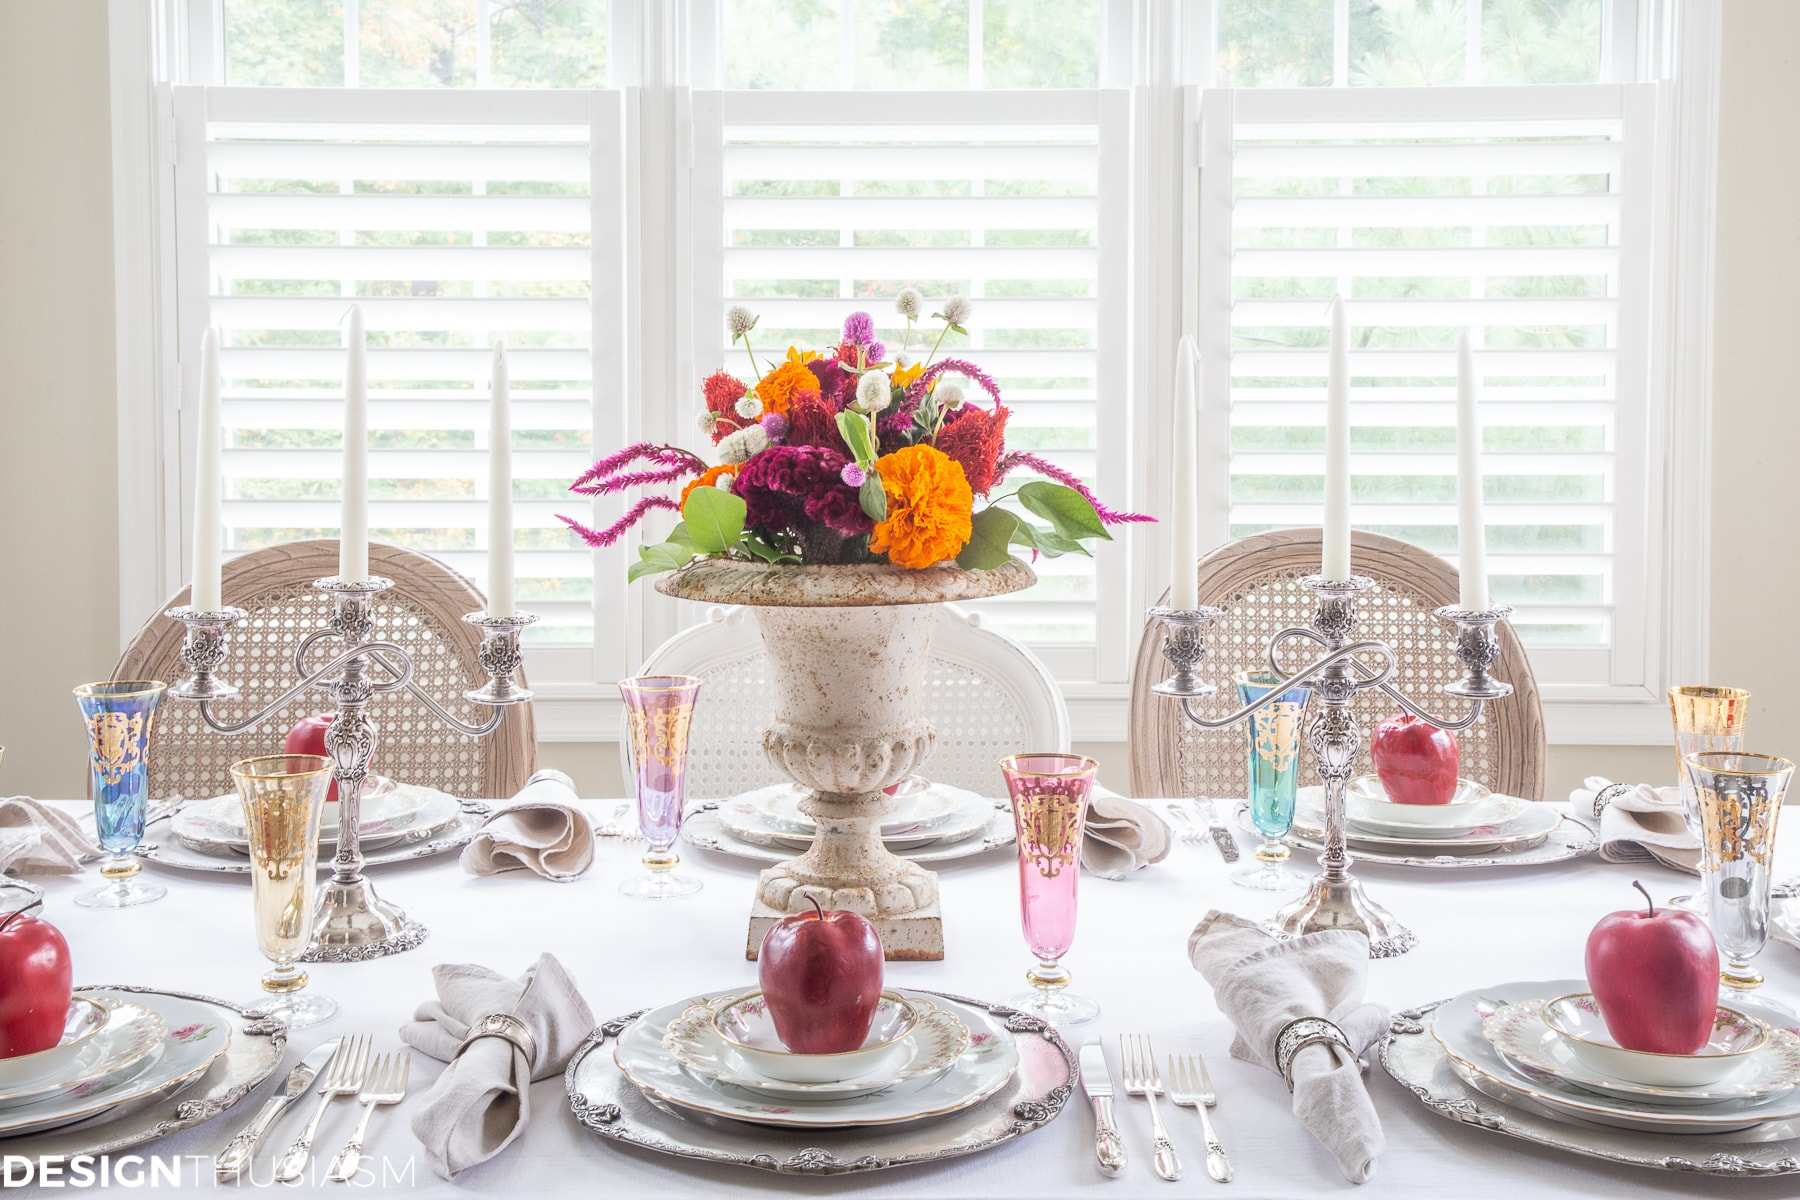 fall table setting with apples and colorful flowers